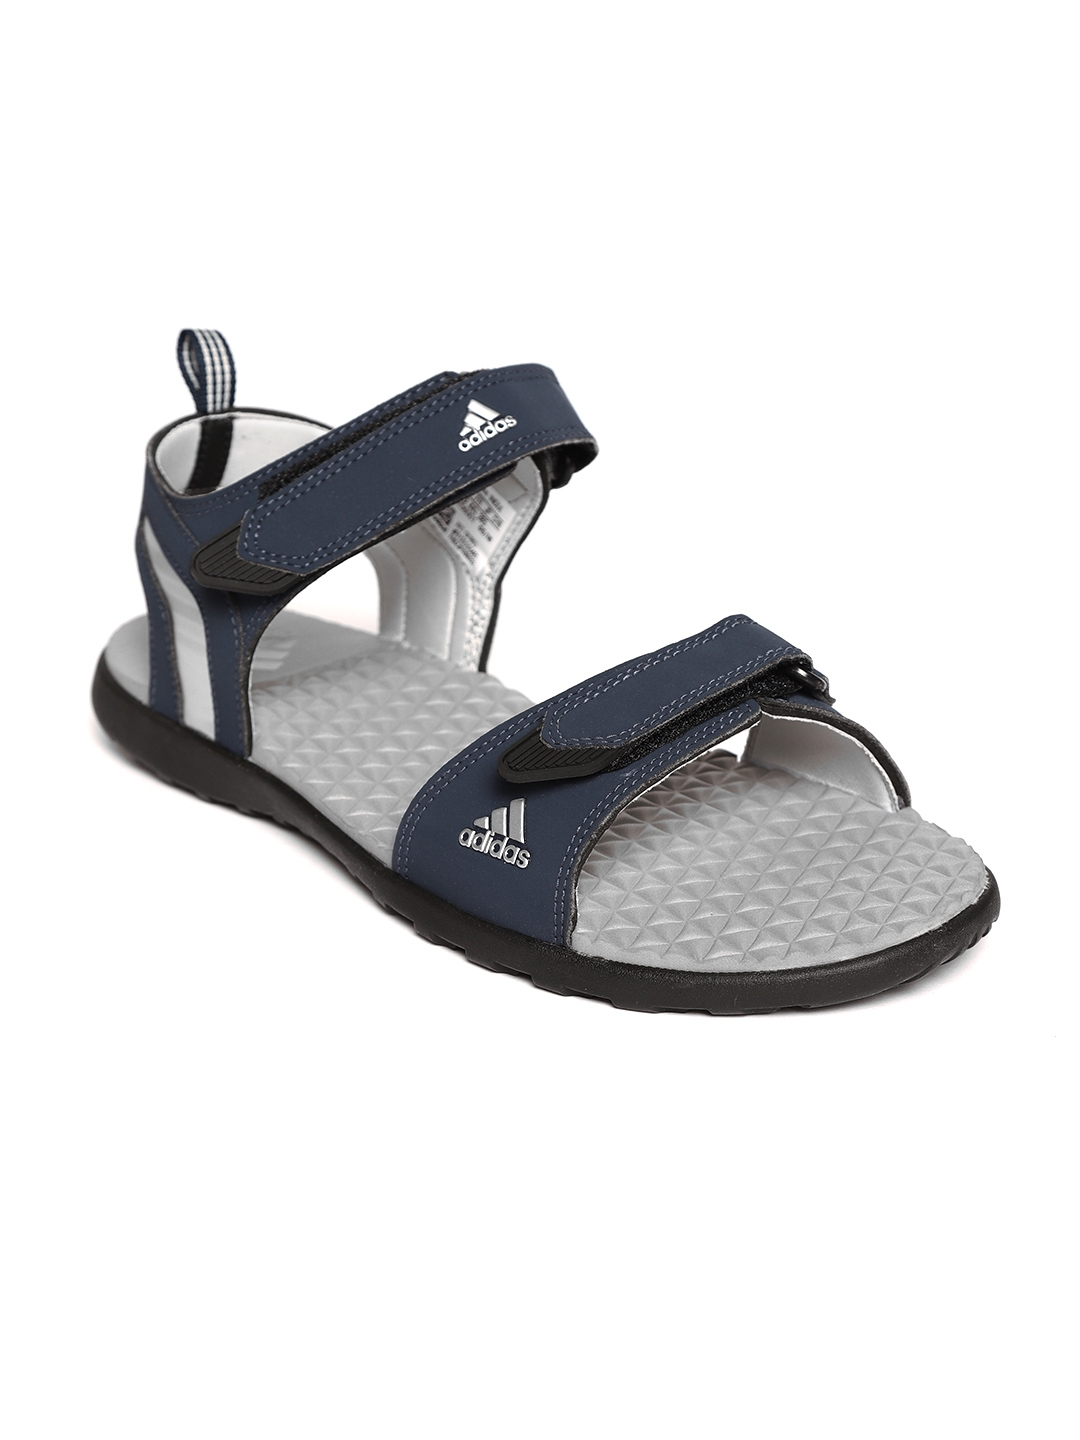 4f94722fee17ca Buy ADIDAS Men Navy Blue MOBE Sports Sandals - Sports Sandals for ...